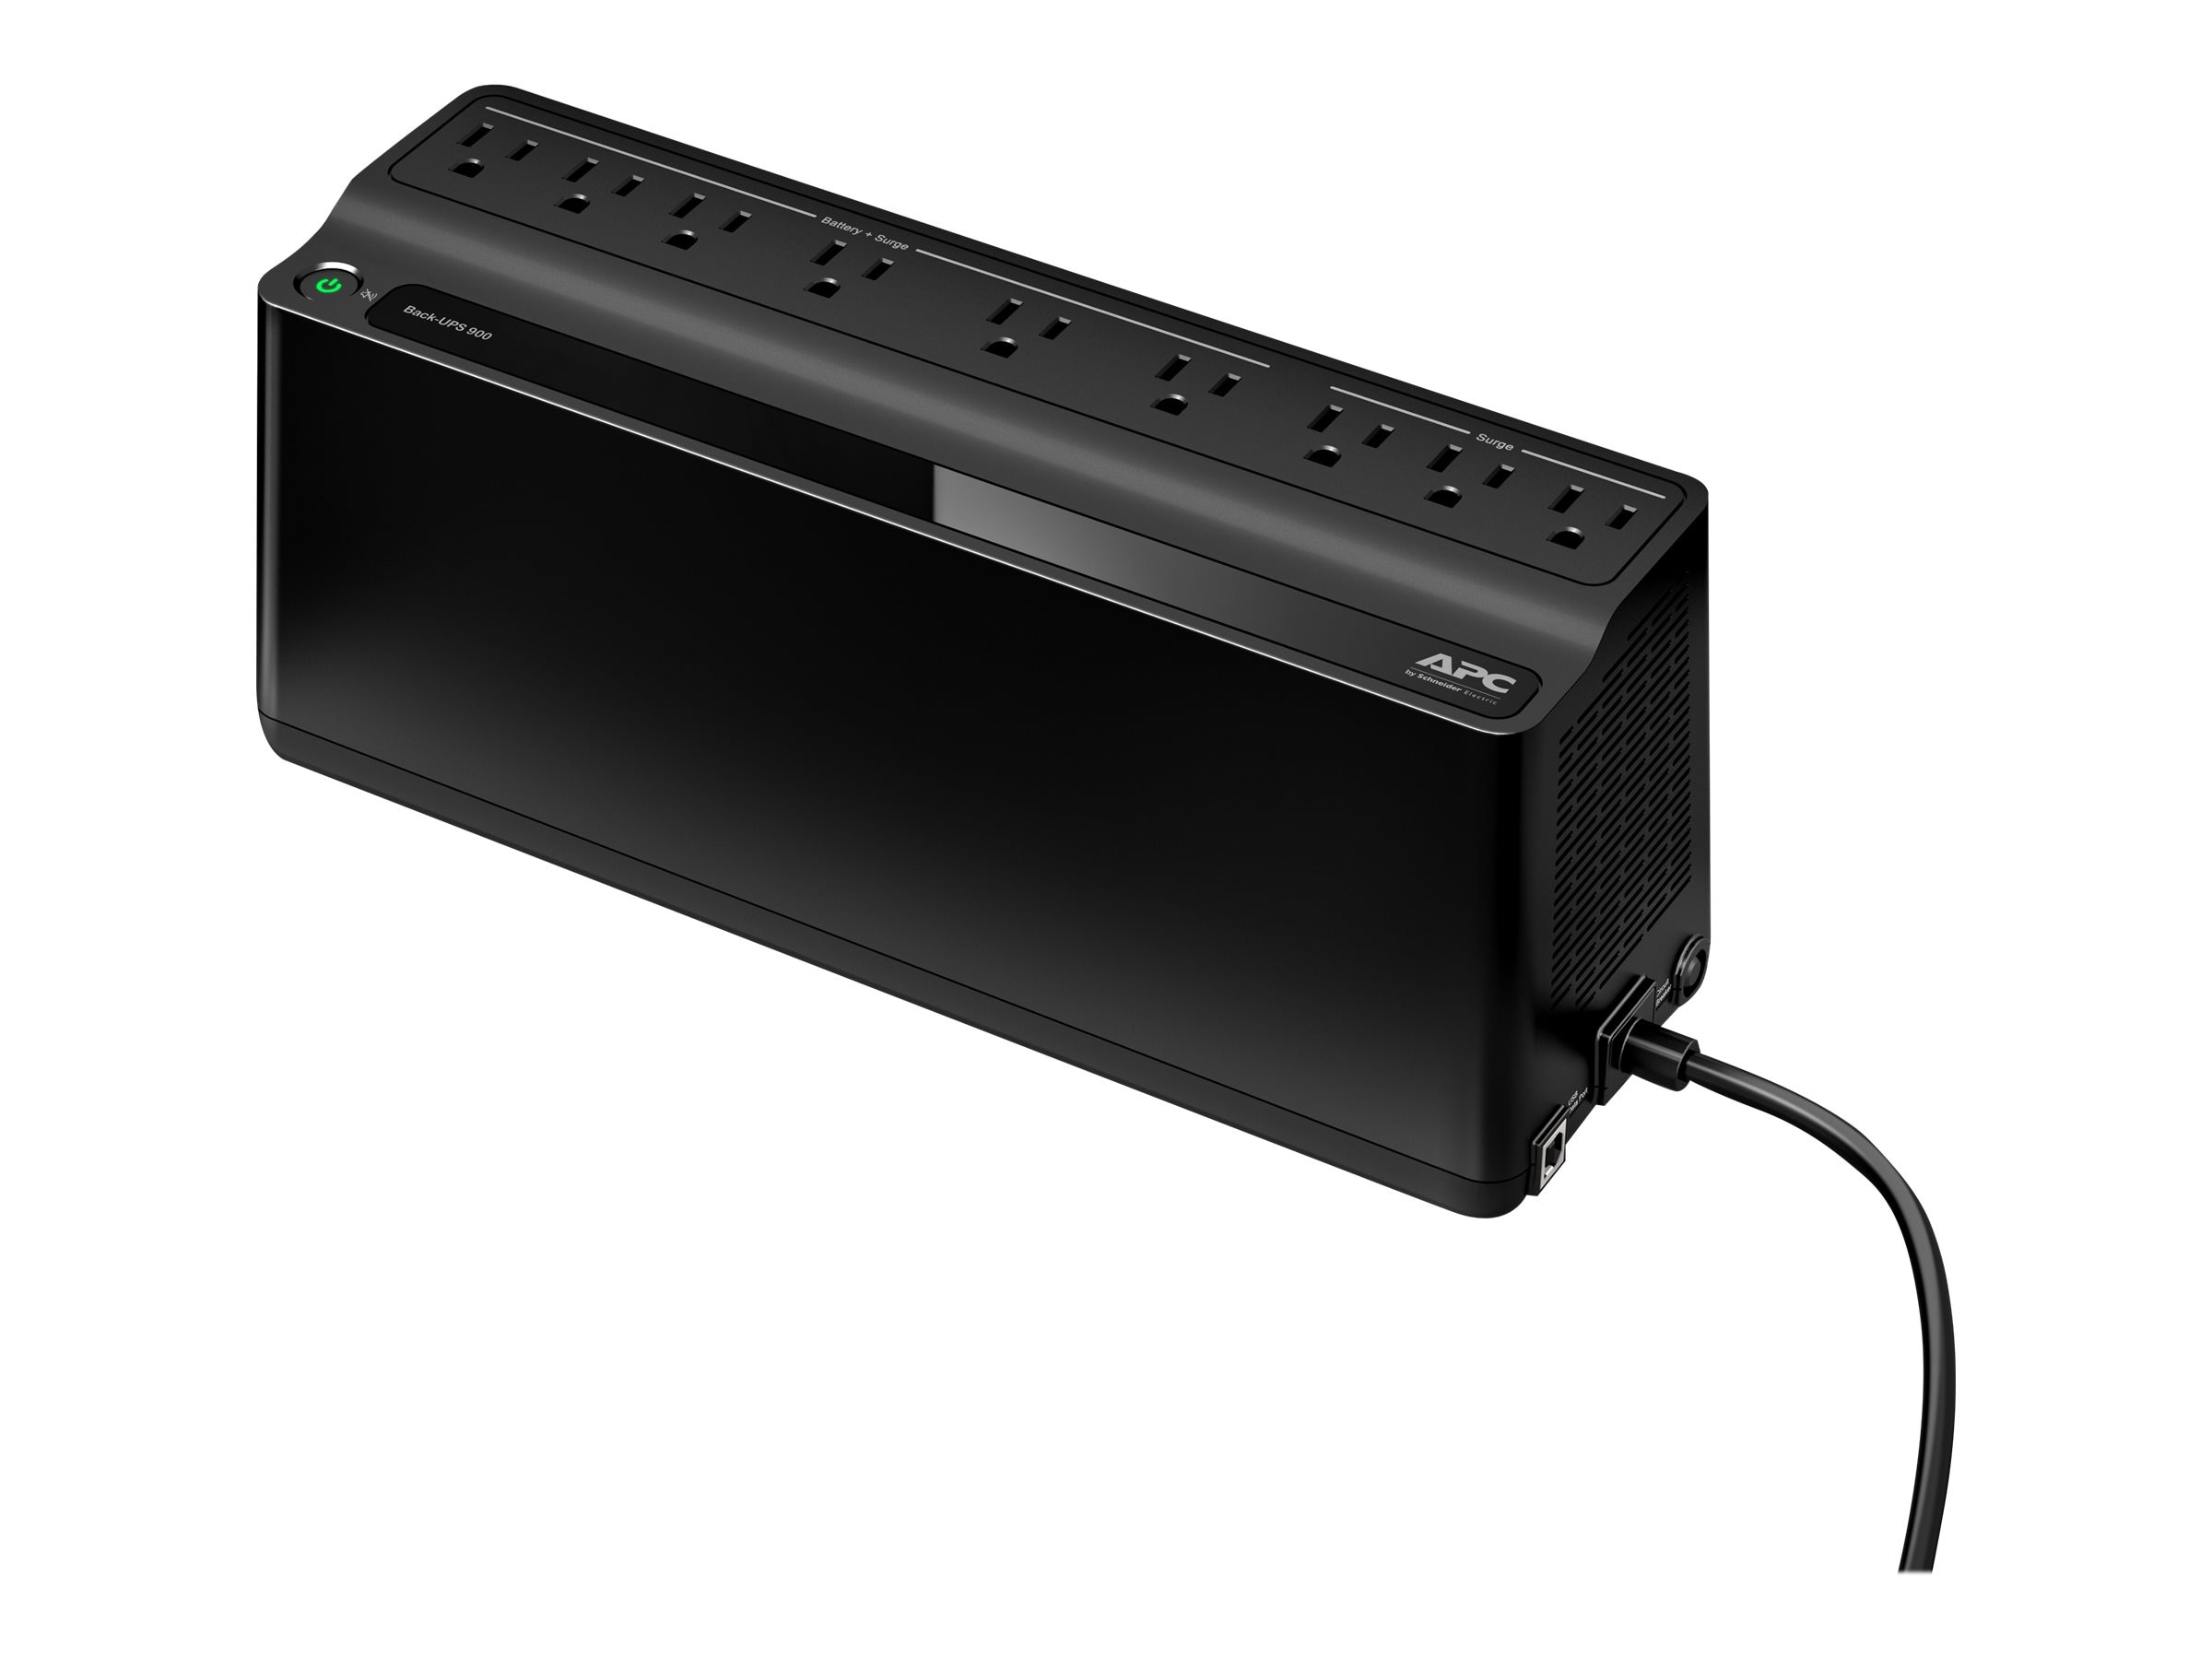 APC Back-UPS 900VA 480W 120V 5-15P Input 5ft Cord (9) Outlets USB Energy Star, BN900M